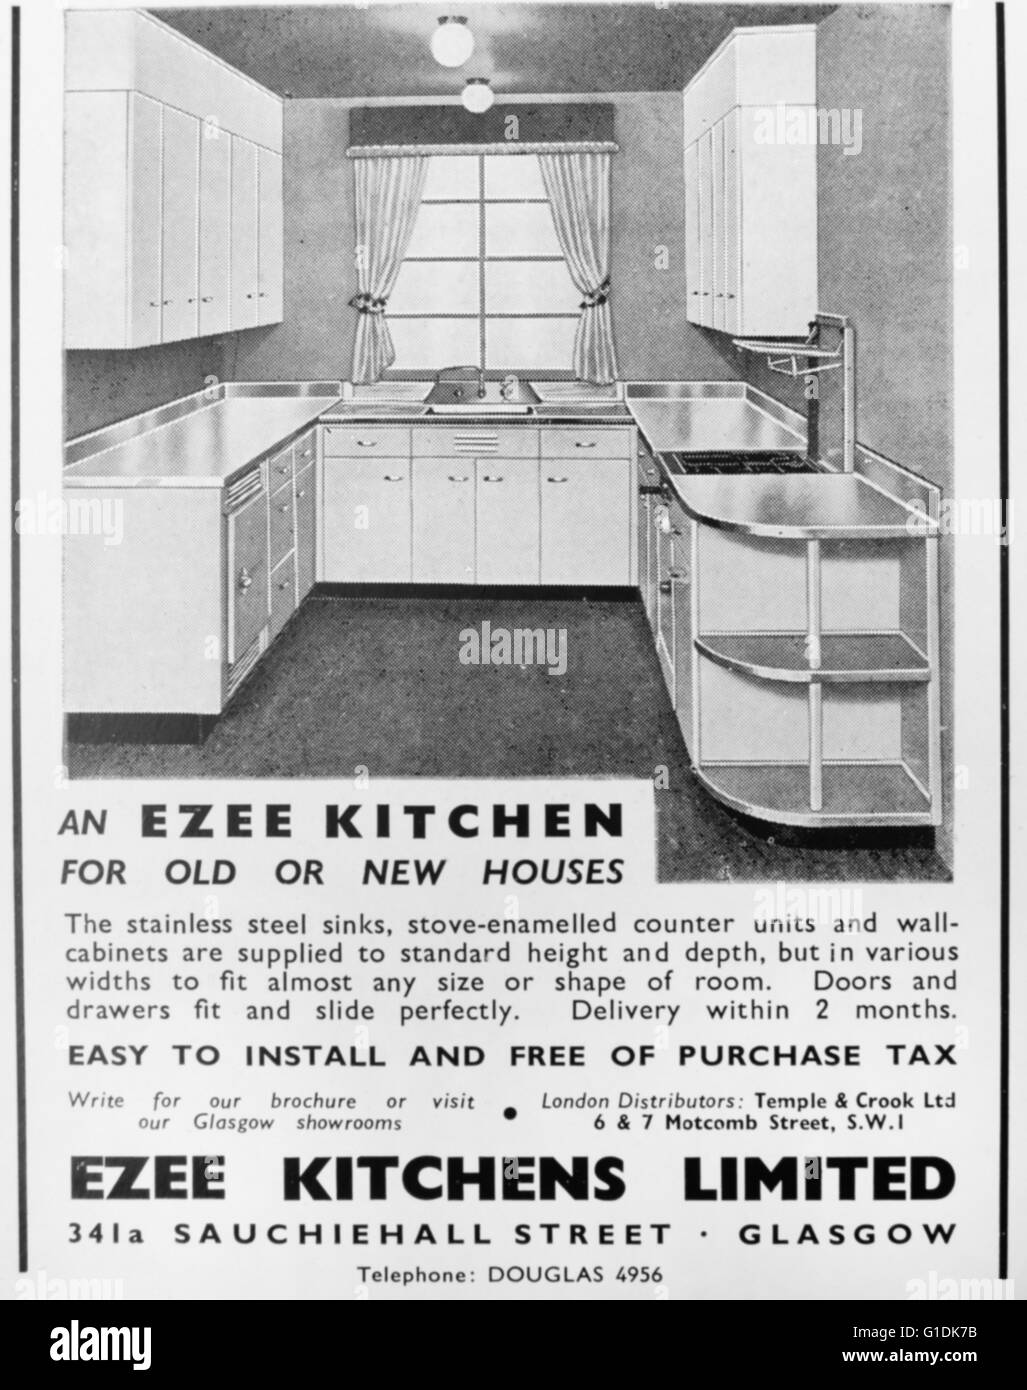 Advert for an 'Ezee Kitchen' from Ezee Kitchens Ltd. Glasgow - Stock Image